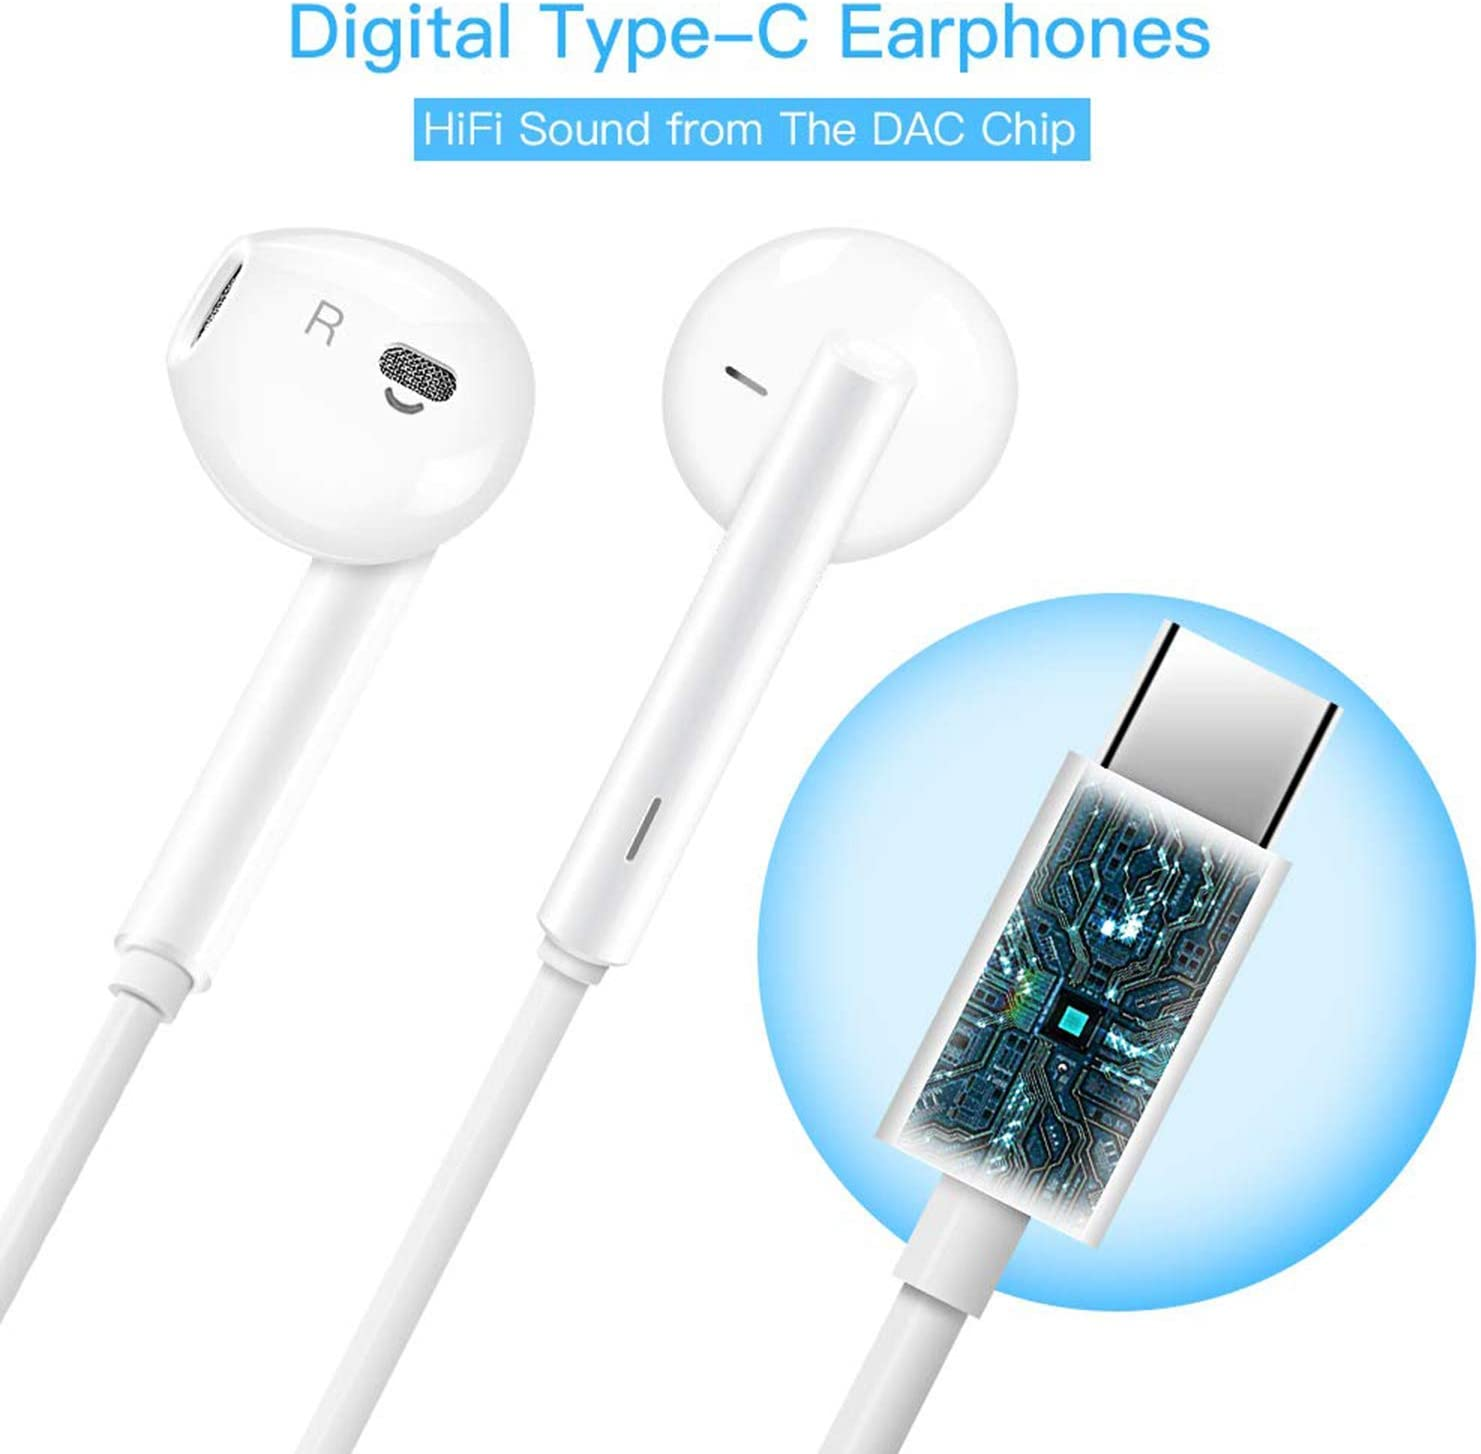 USB C Headphone HiFi Stereo in Ear USB C Earbuds Type C Headphones with Microphone Bass Earbud with Volume Control Compatible with Google Pixel 3XL,OnePlus 7 Pro,XiaoMi,Huawei P30 Pro,iPad Pro,Sony: Home Audio & Theater